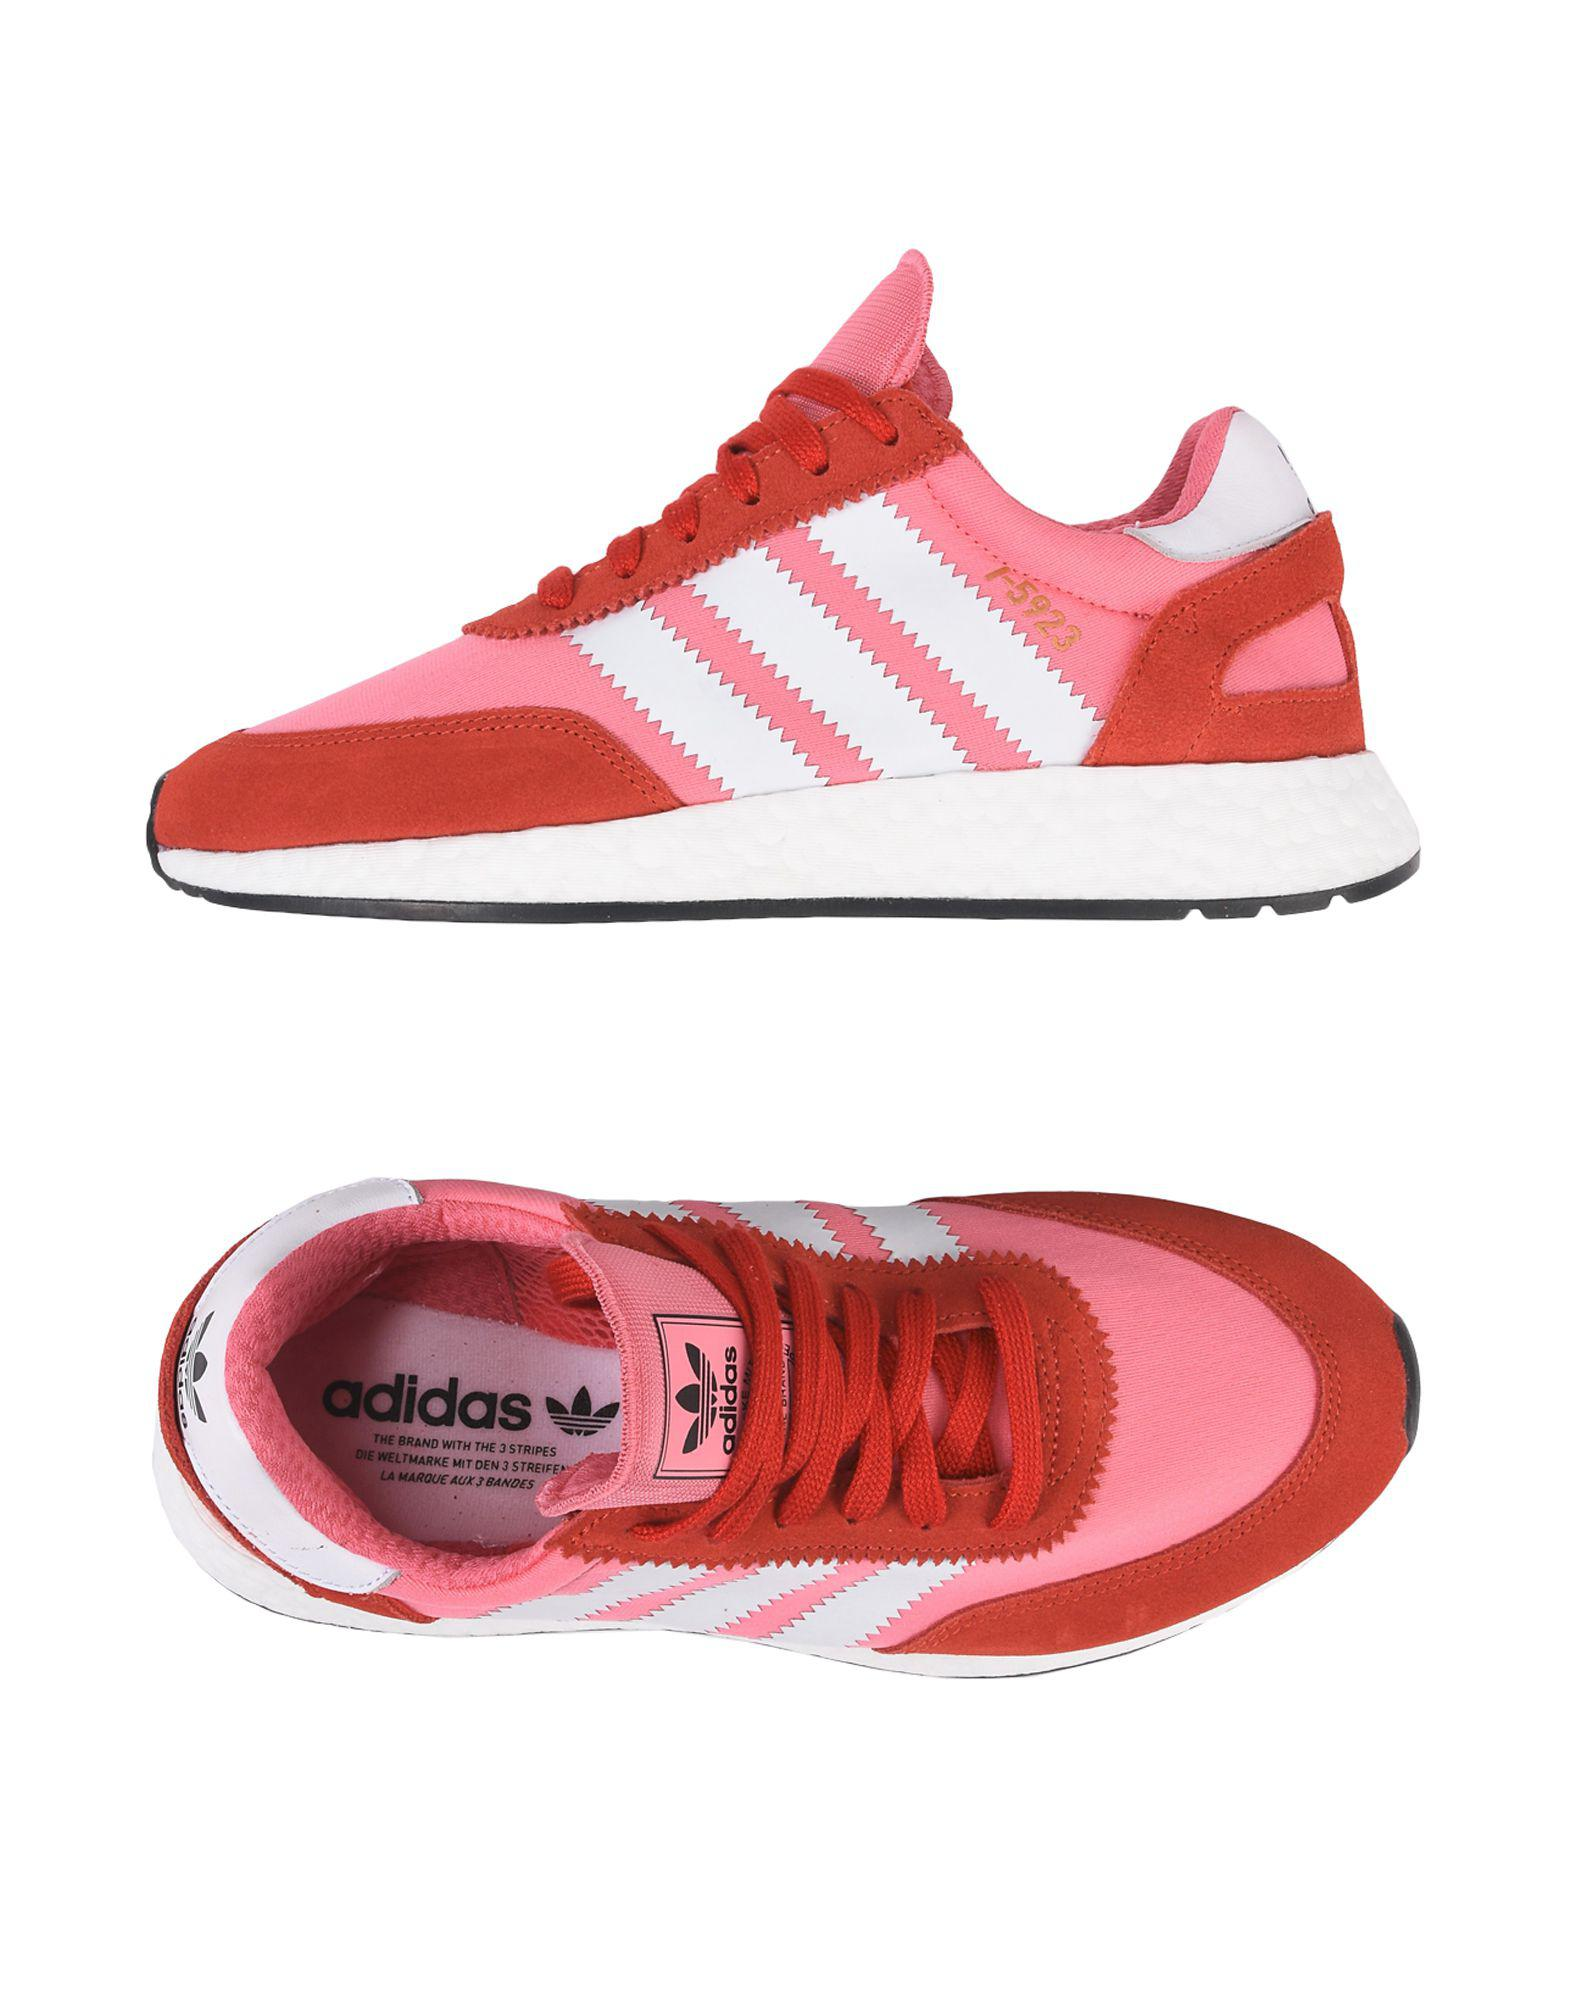 fc76ed59d8a Sneakers Low Pink Adidas Tops Originals In amp; Lyst wCnSFz